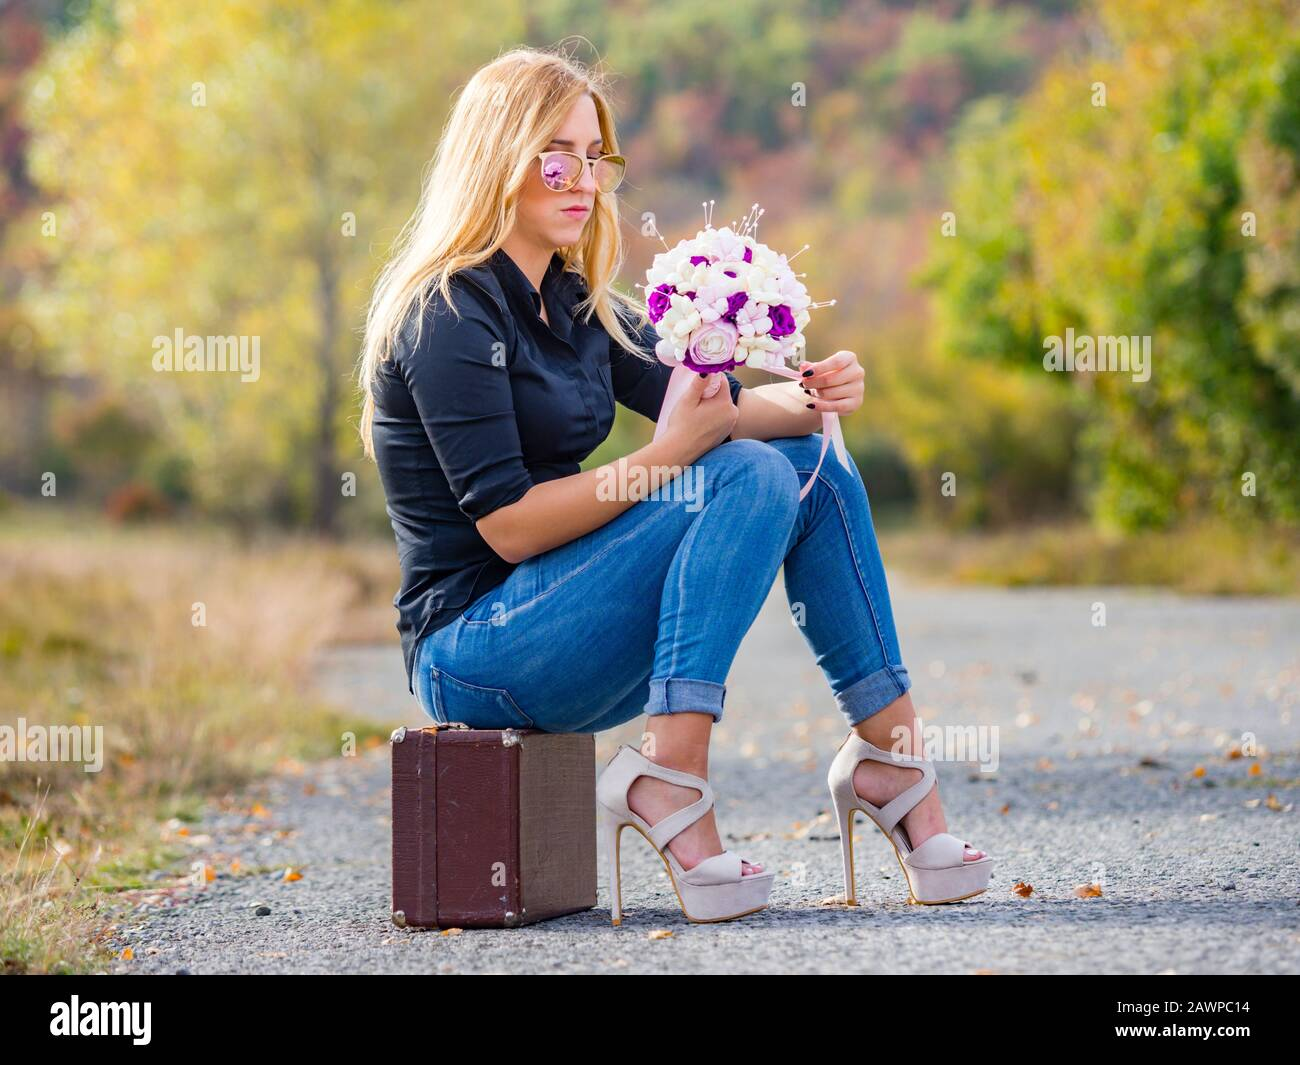 Teen girl sitting on boxy baggage case countryroad denim pants legs heels hand holding flowery bouquet indifferent Stock Photo